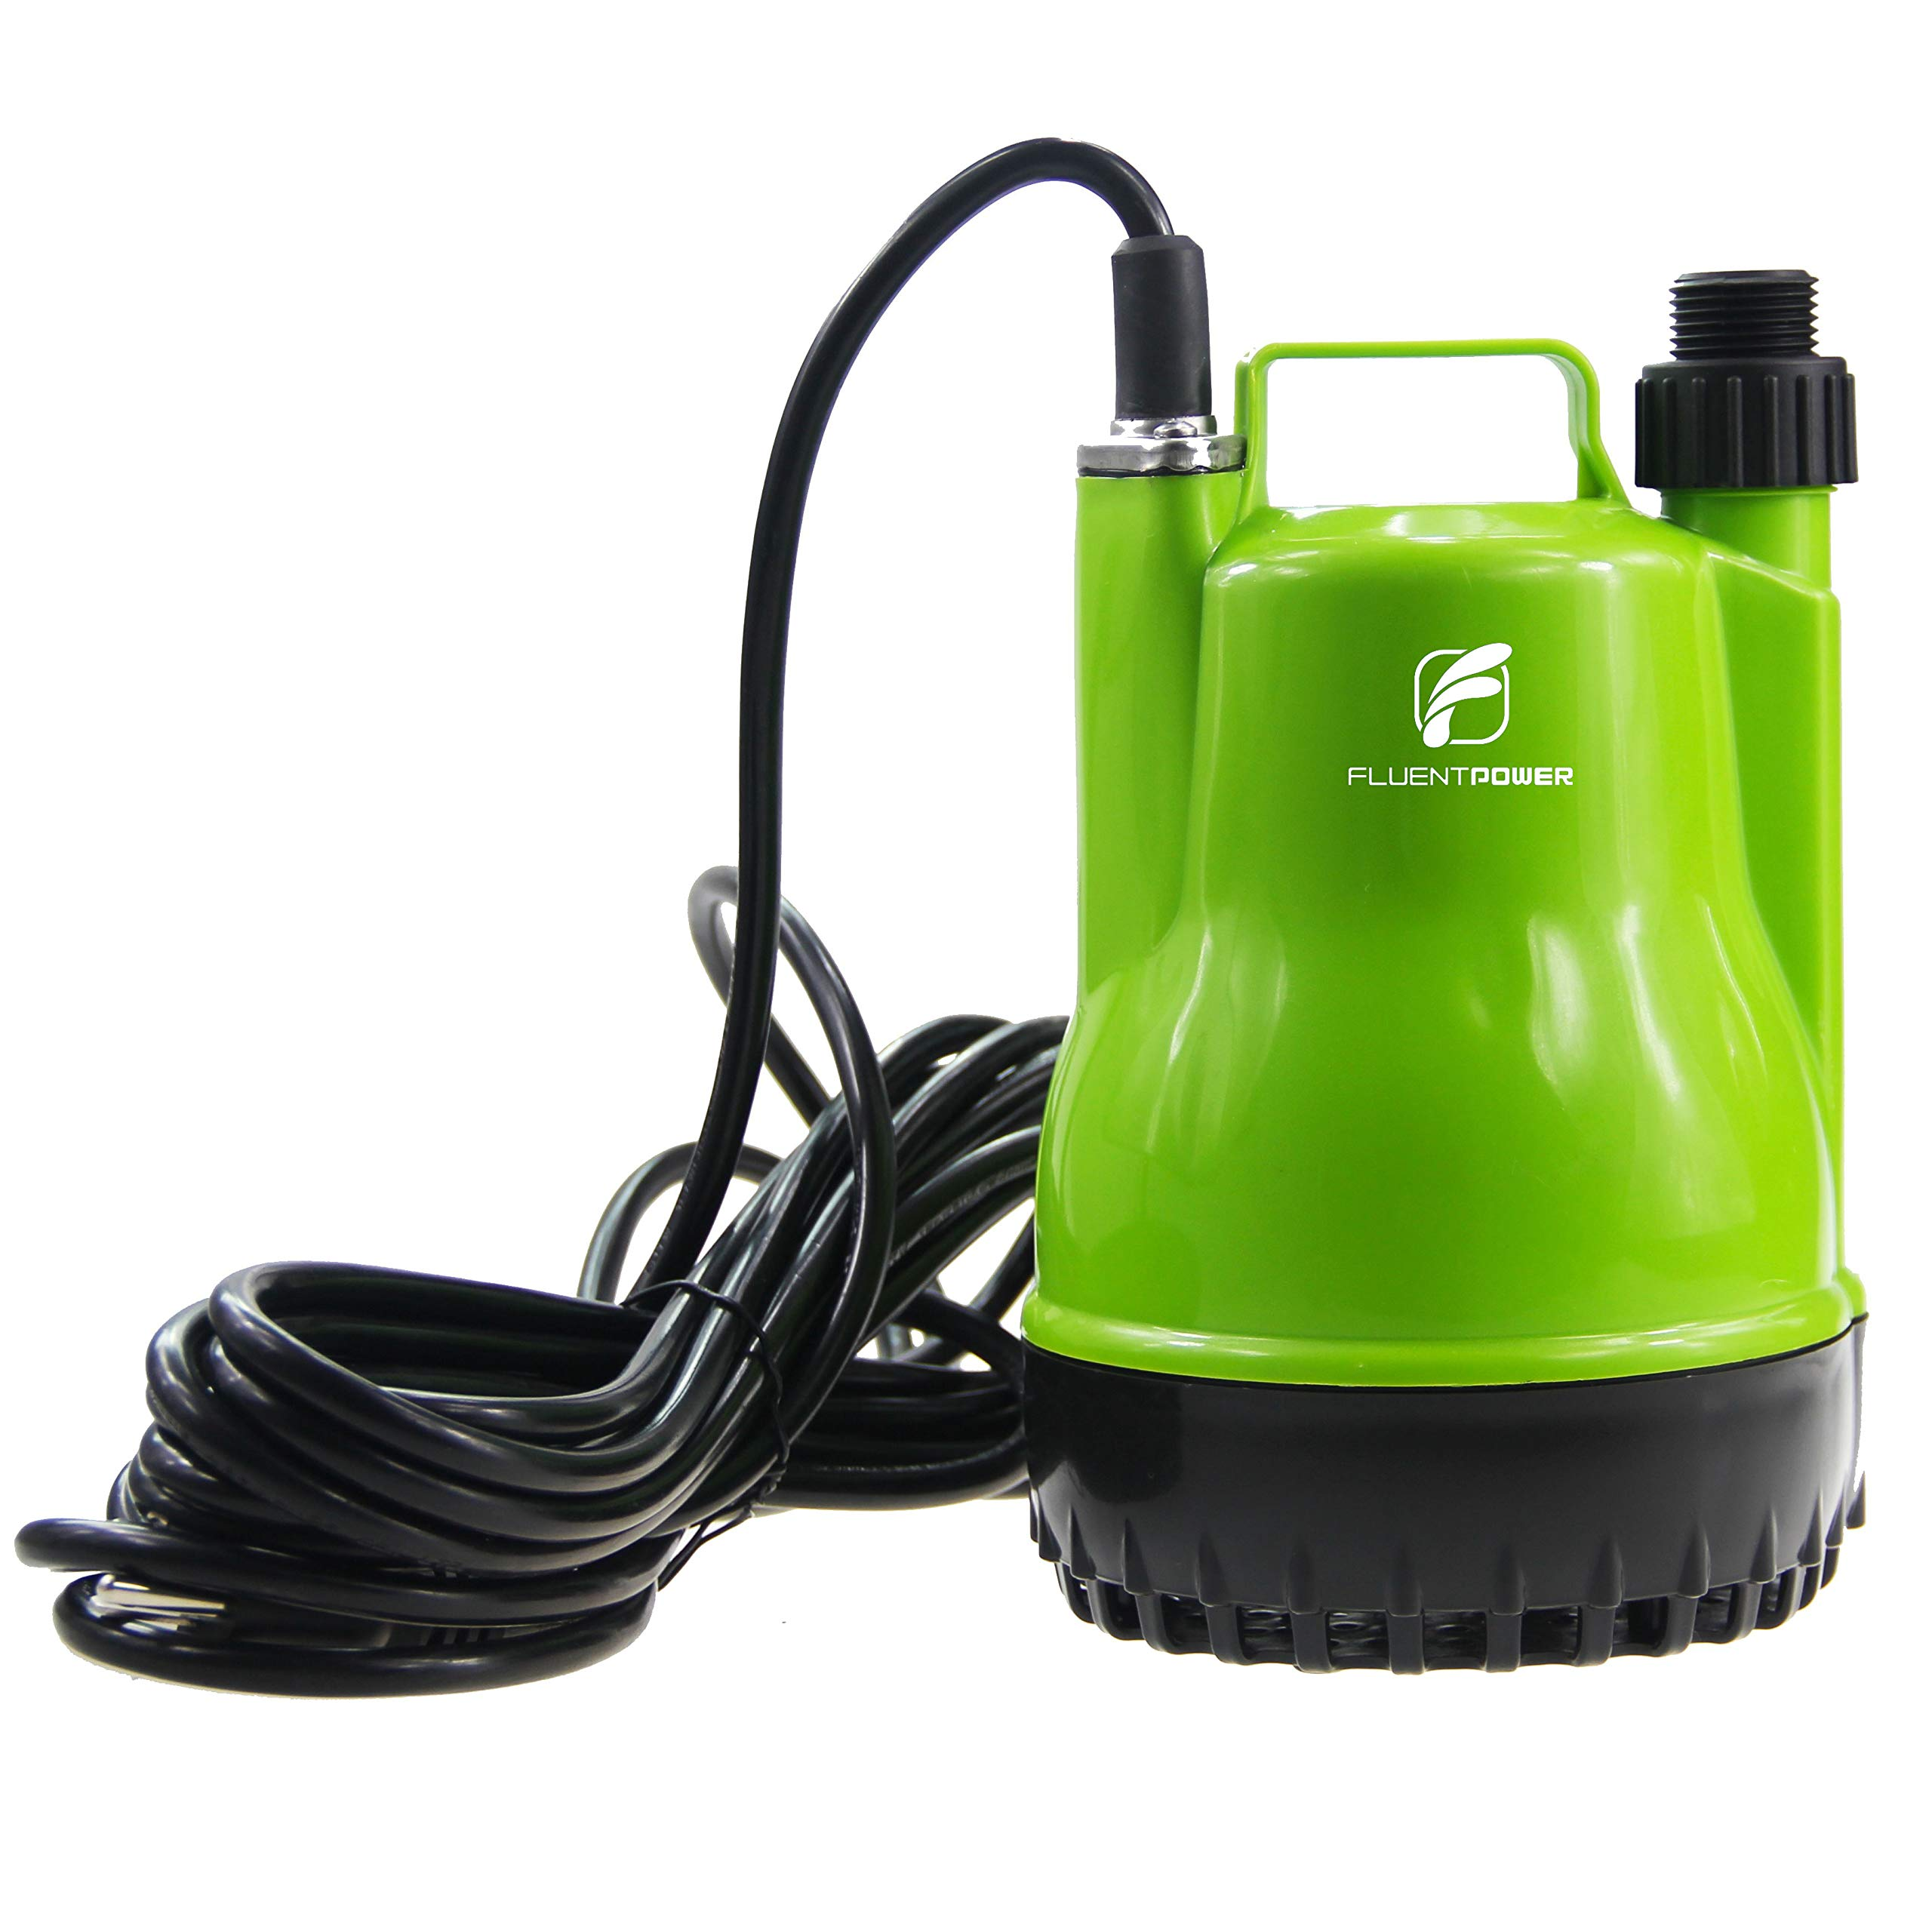 FLUENTPOWER 1/4 HP Portable Submersible Utility Pump with 1500 GPH Flow for Water Removal, Drainage Sump Pump with 3/4'' Adaptor for Standard Garden hose by FLUENTPOWER